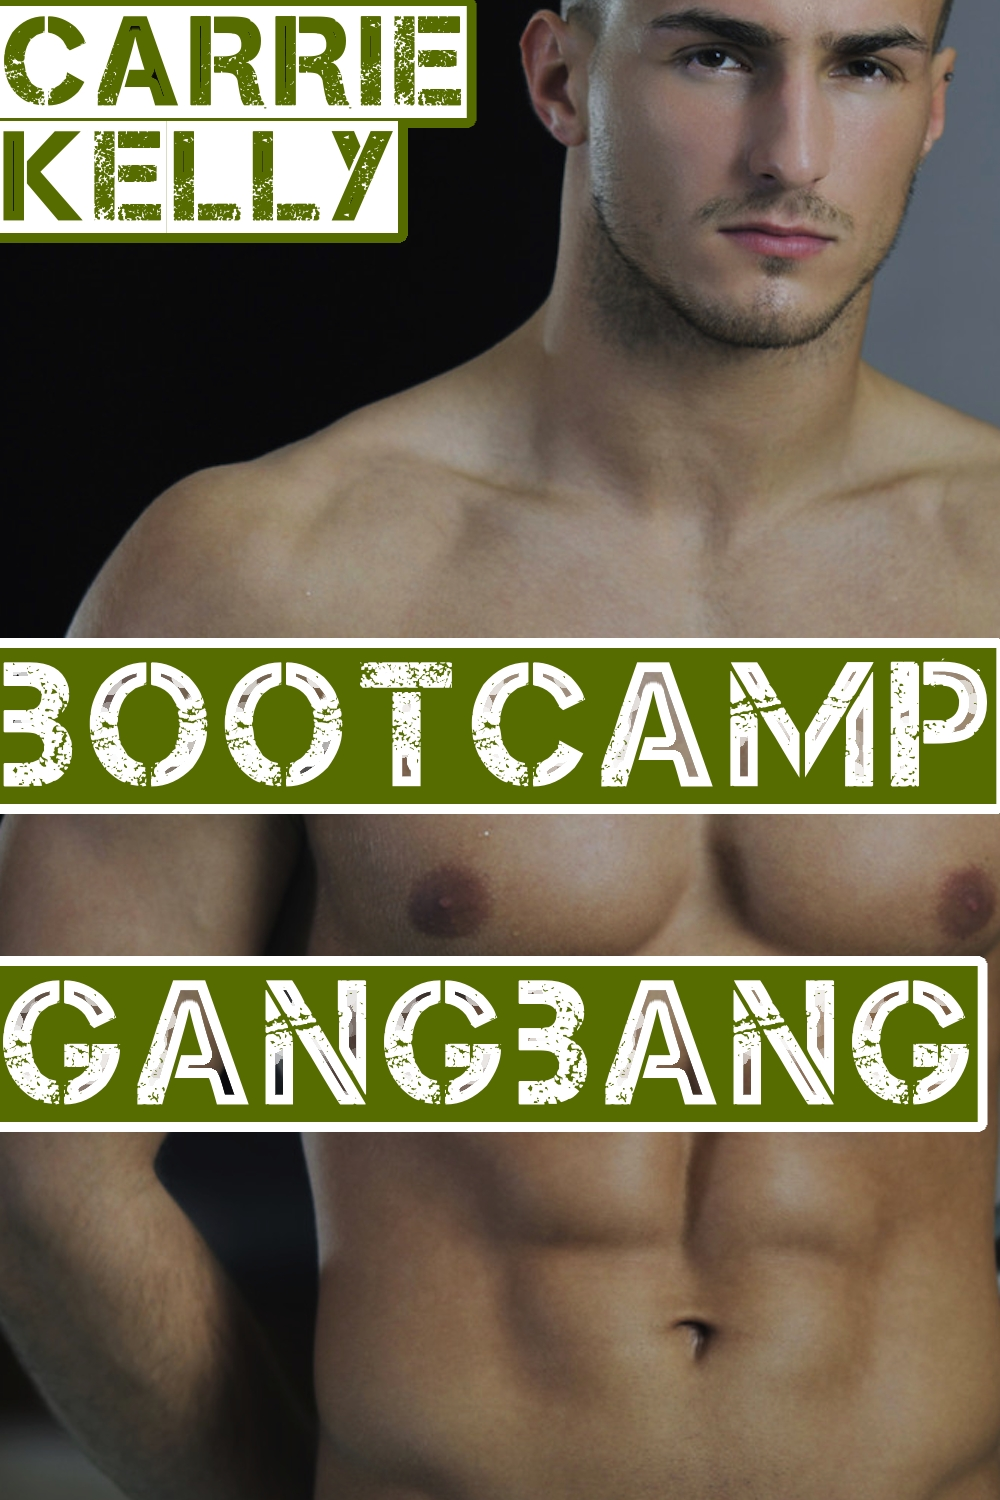 Boot Camp Gangbang By: Carrie Kelly